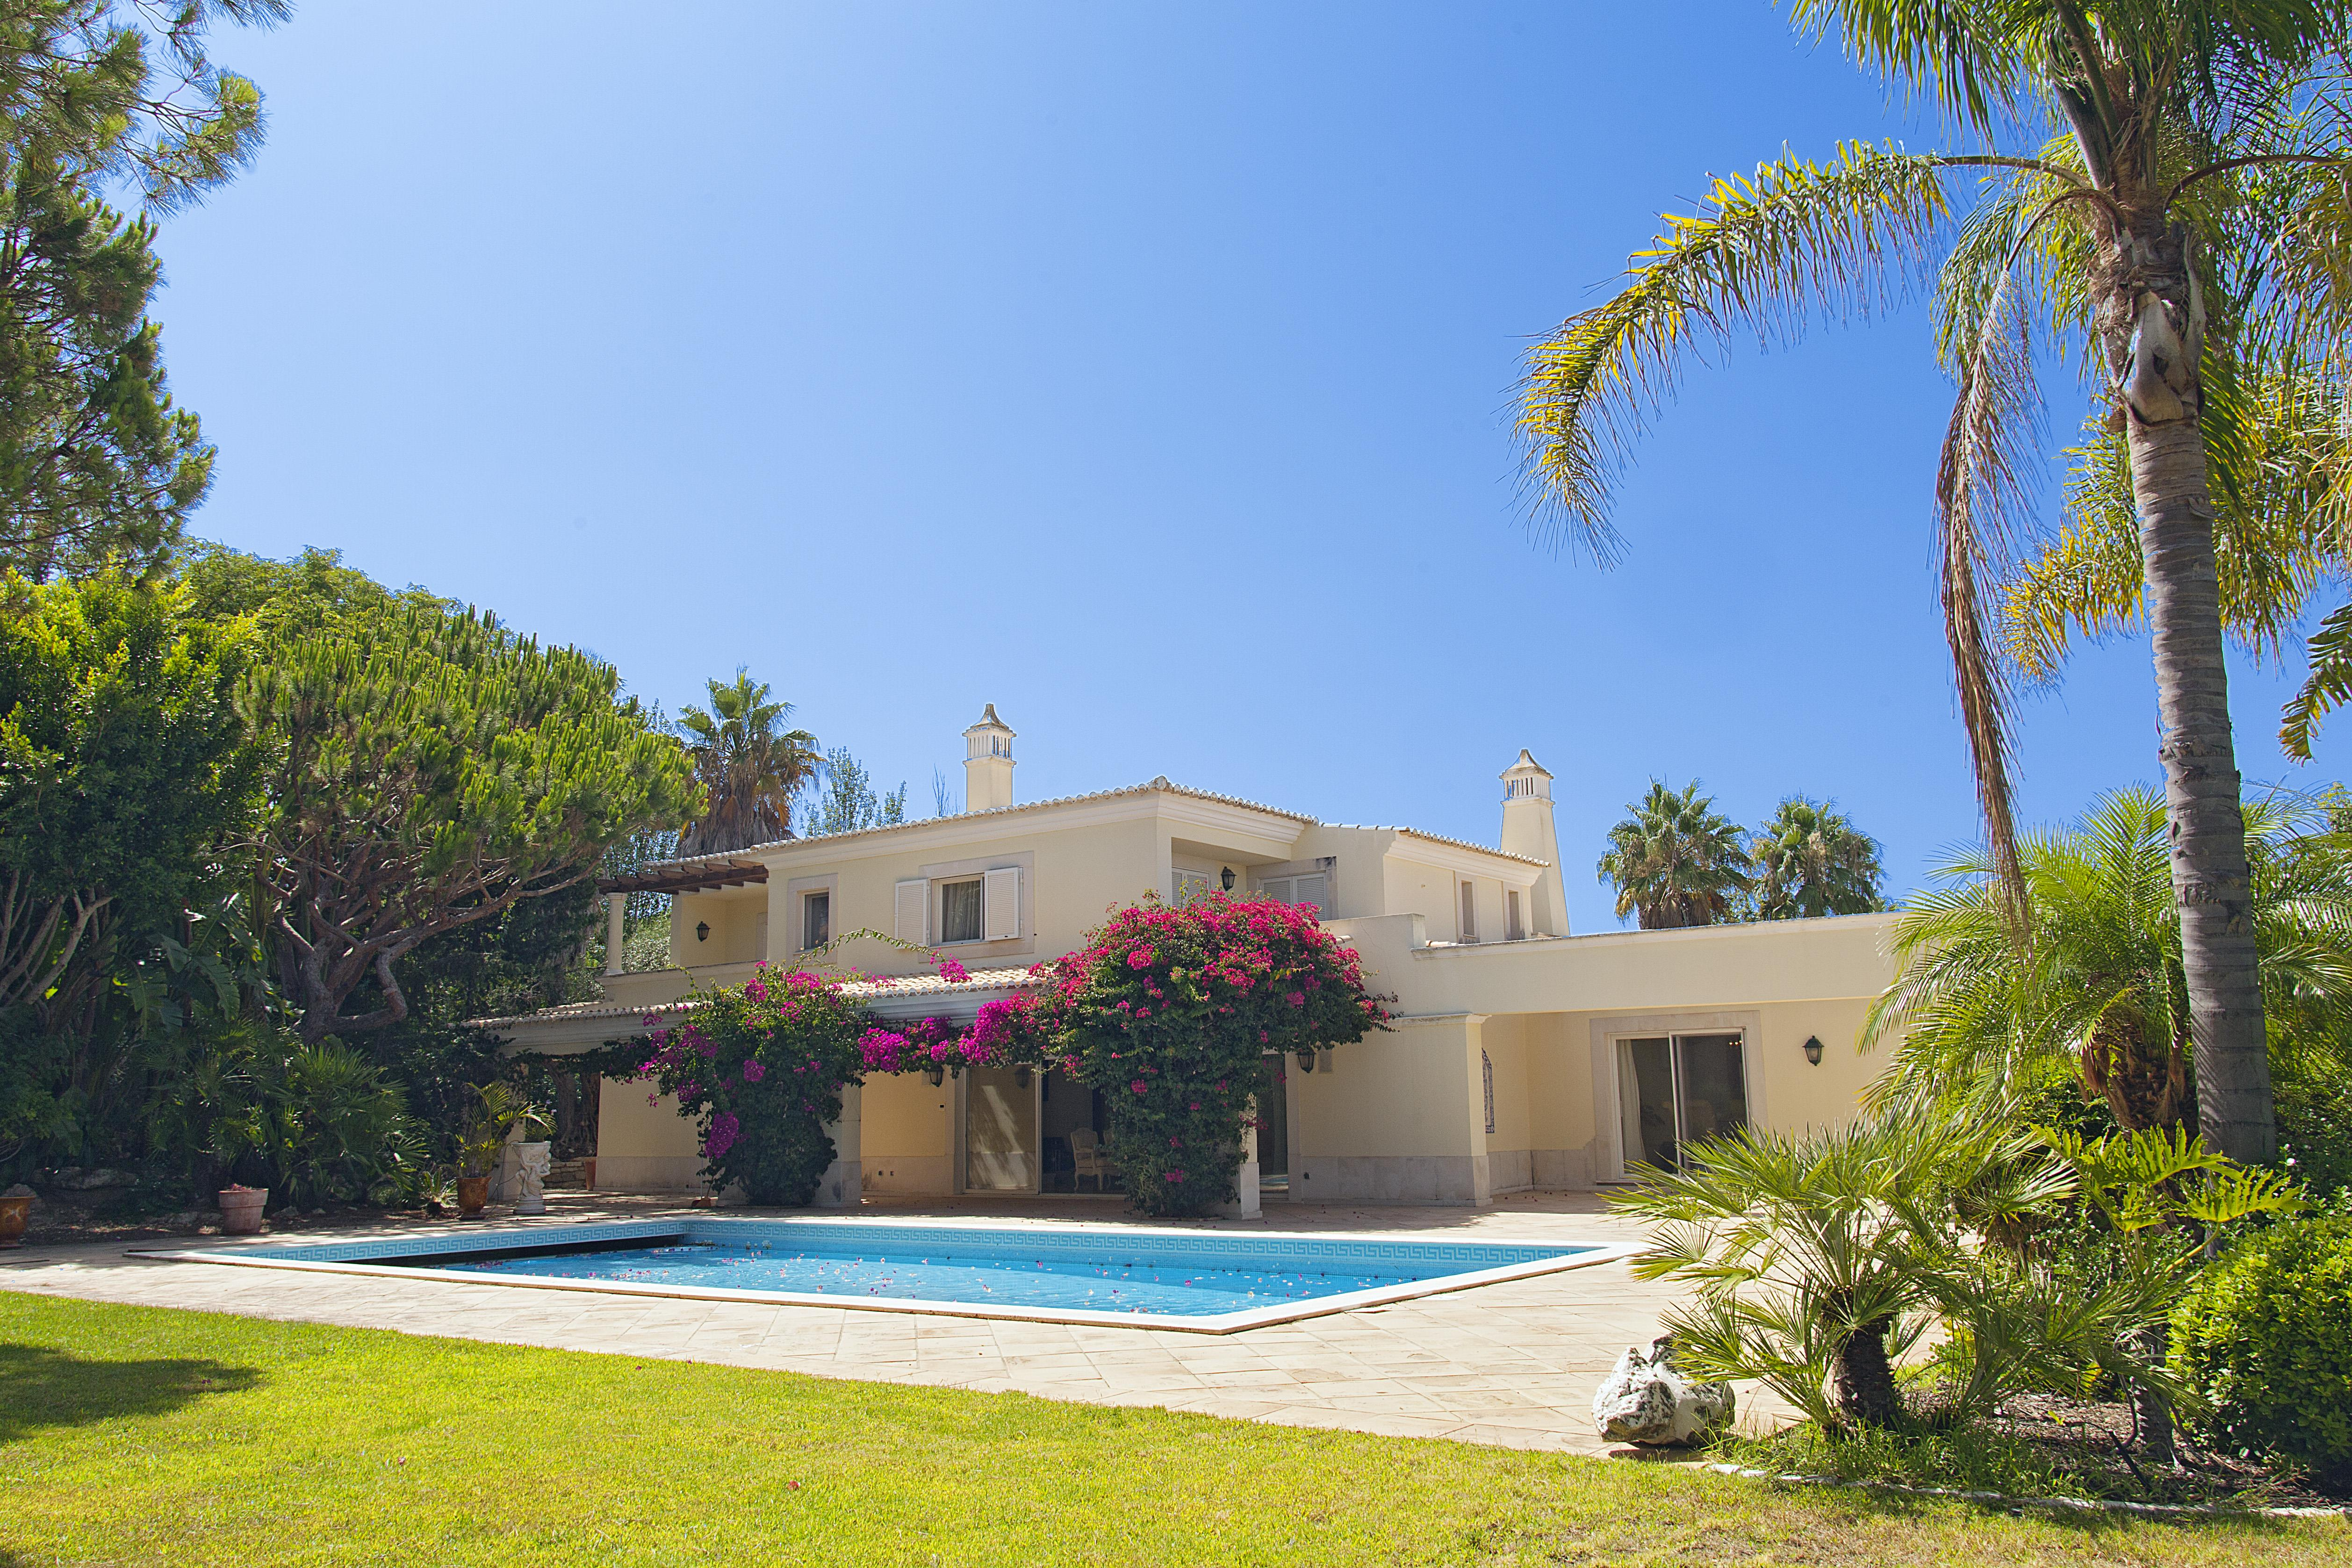 Maison unifamiliale pour l Vente à Detached house, 6 bedrooms, for Sale Loule, Algarve, 8135-00 Portugal